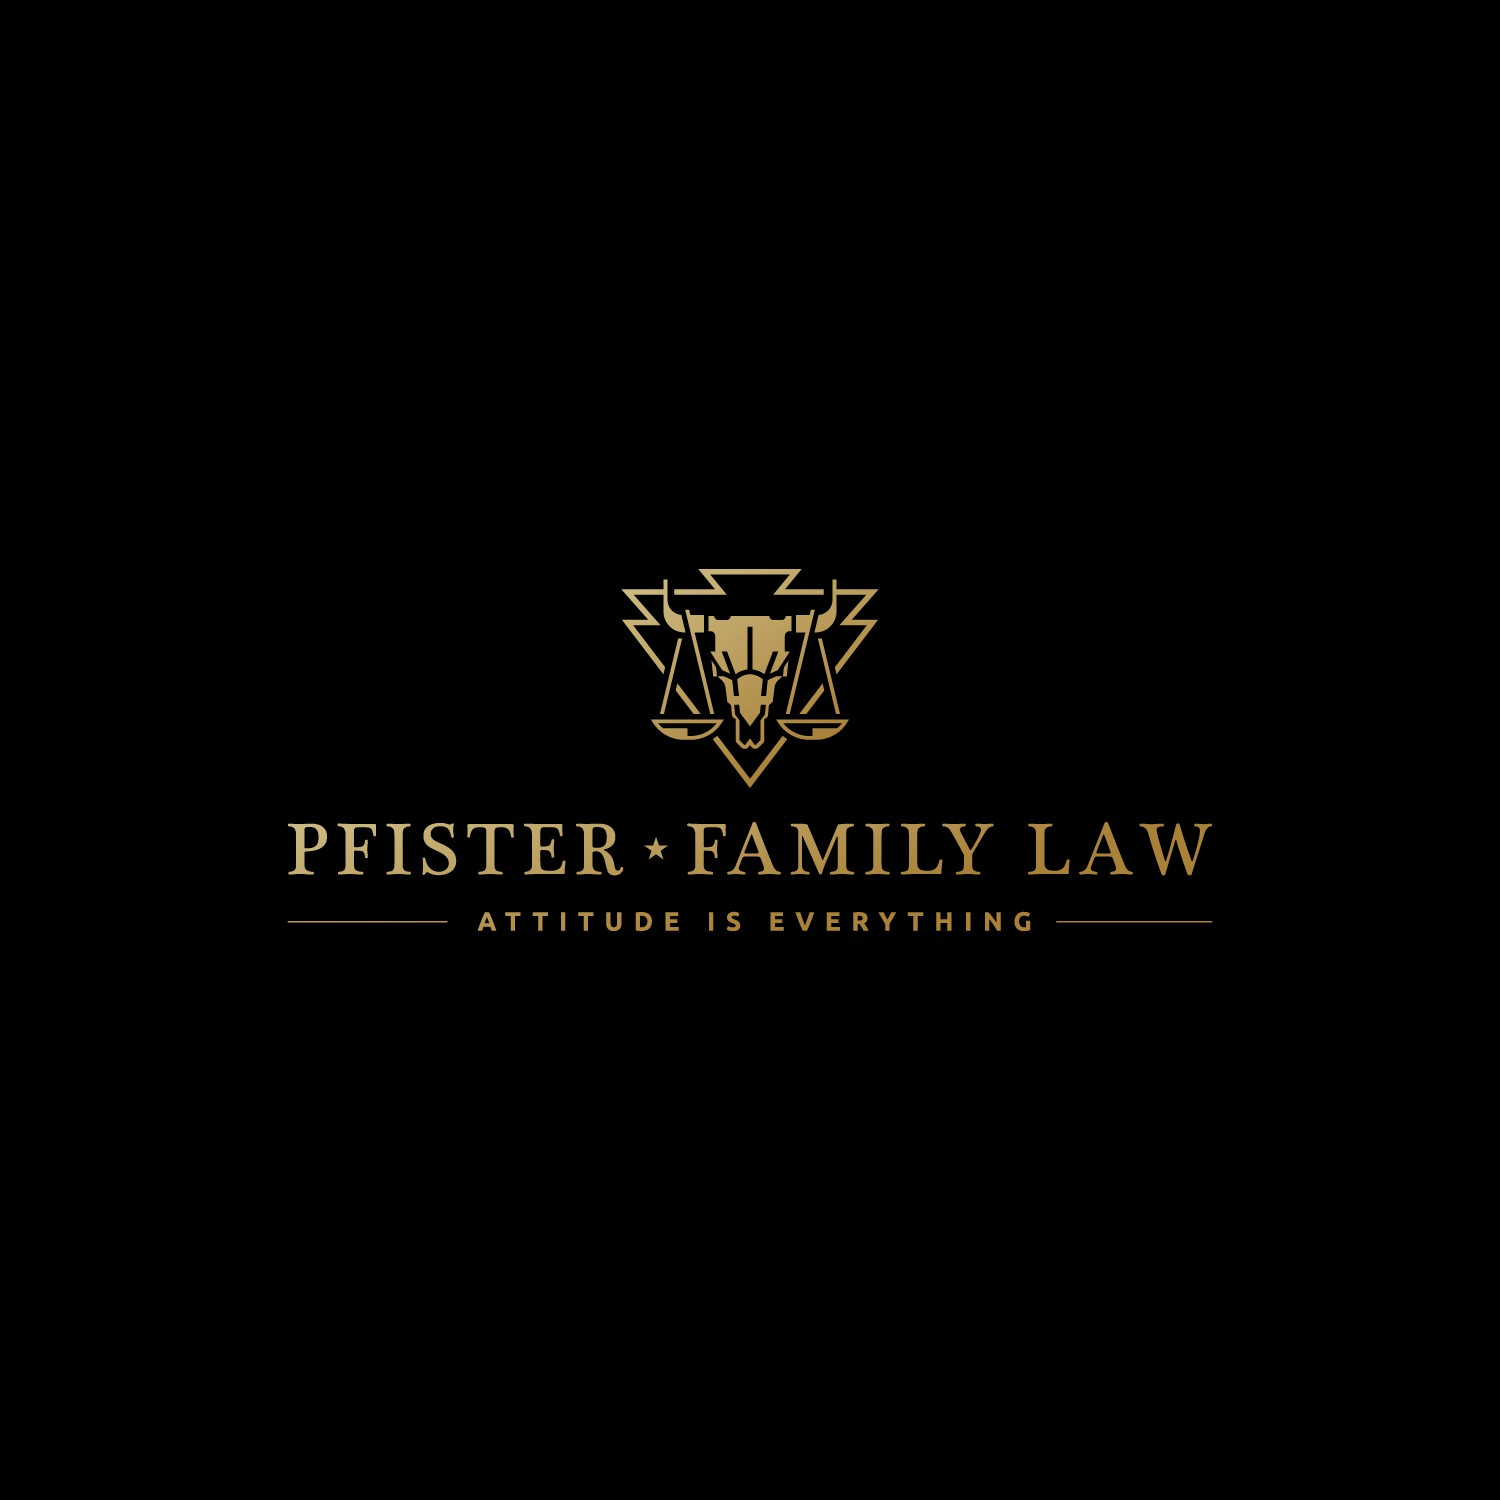 Texas Family Law Firm needs logo